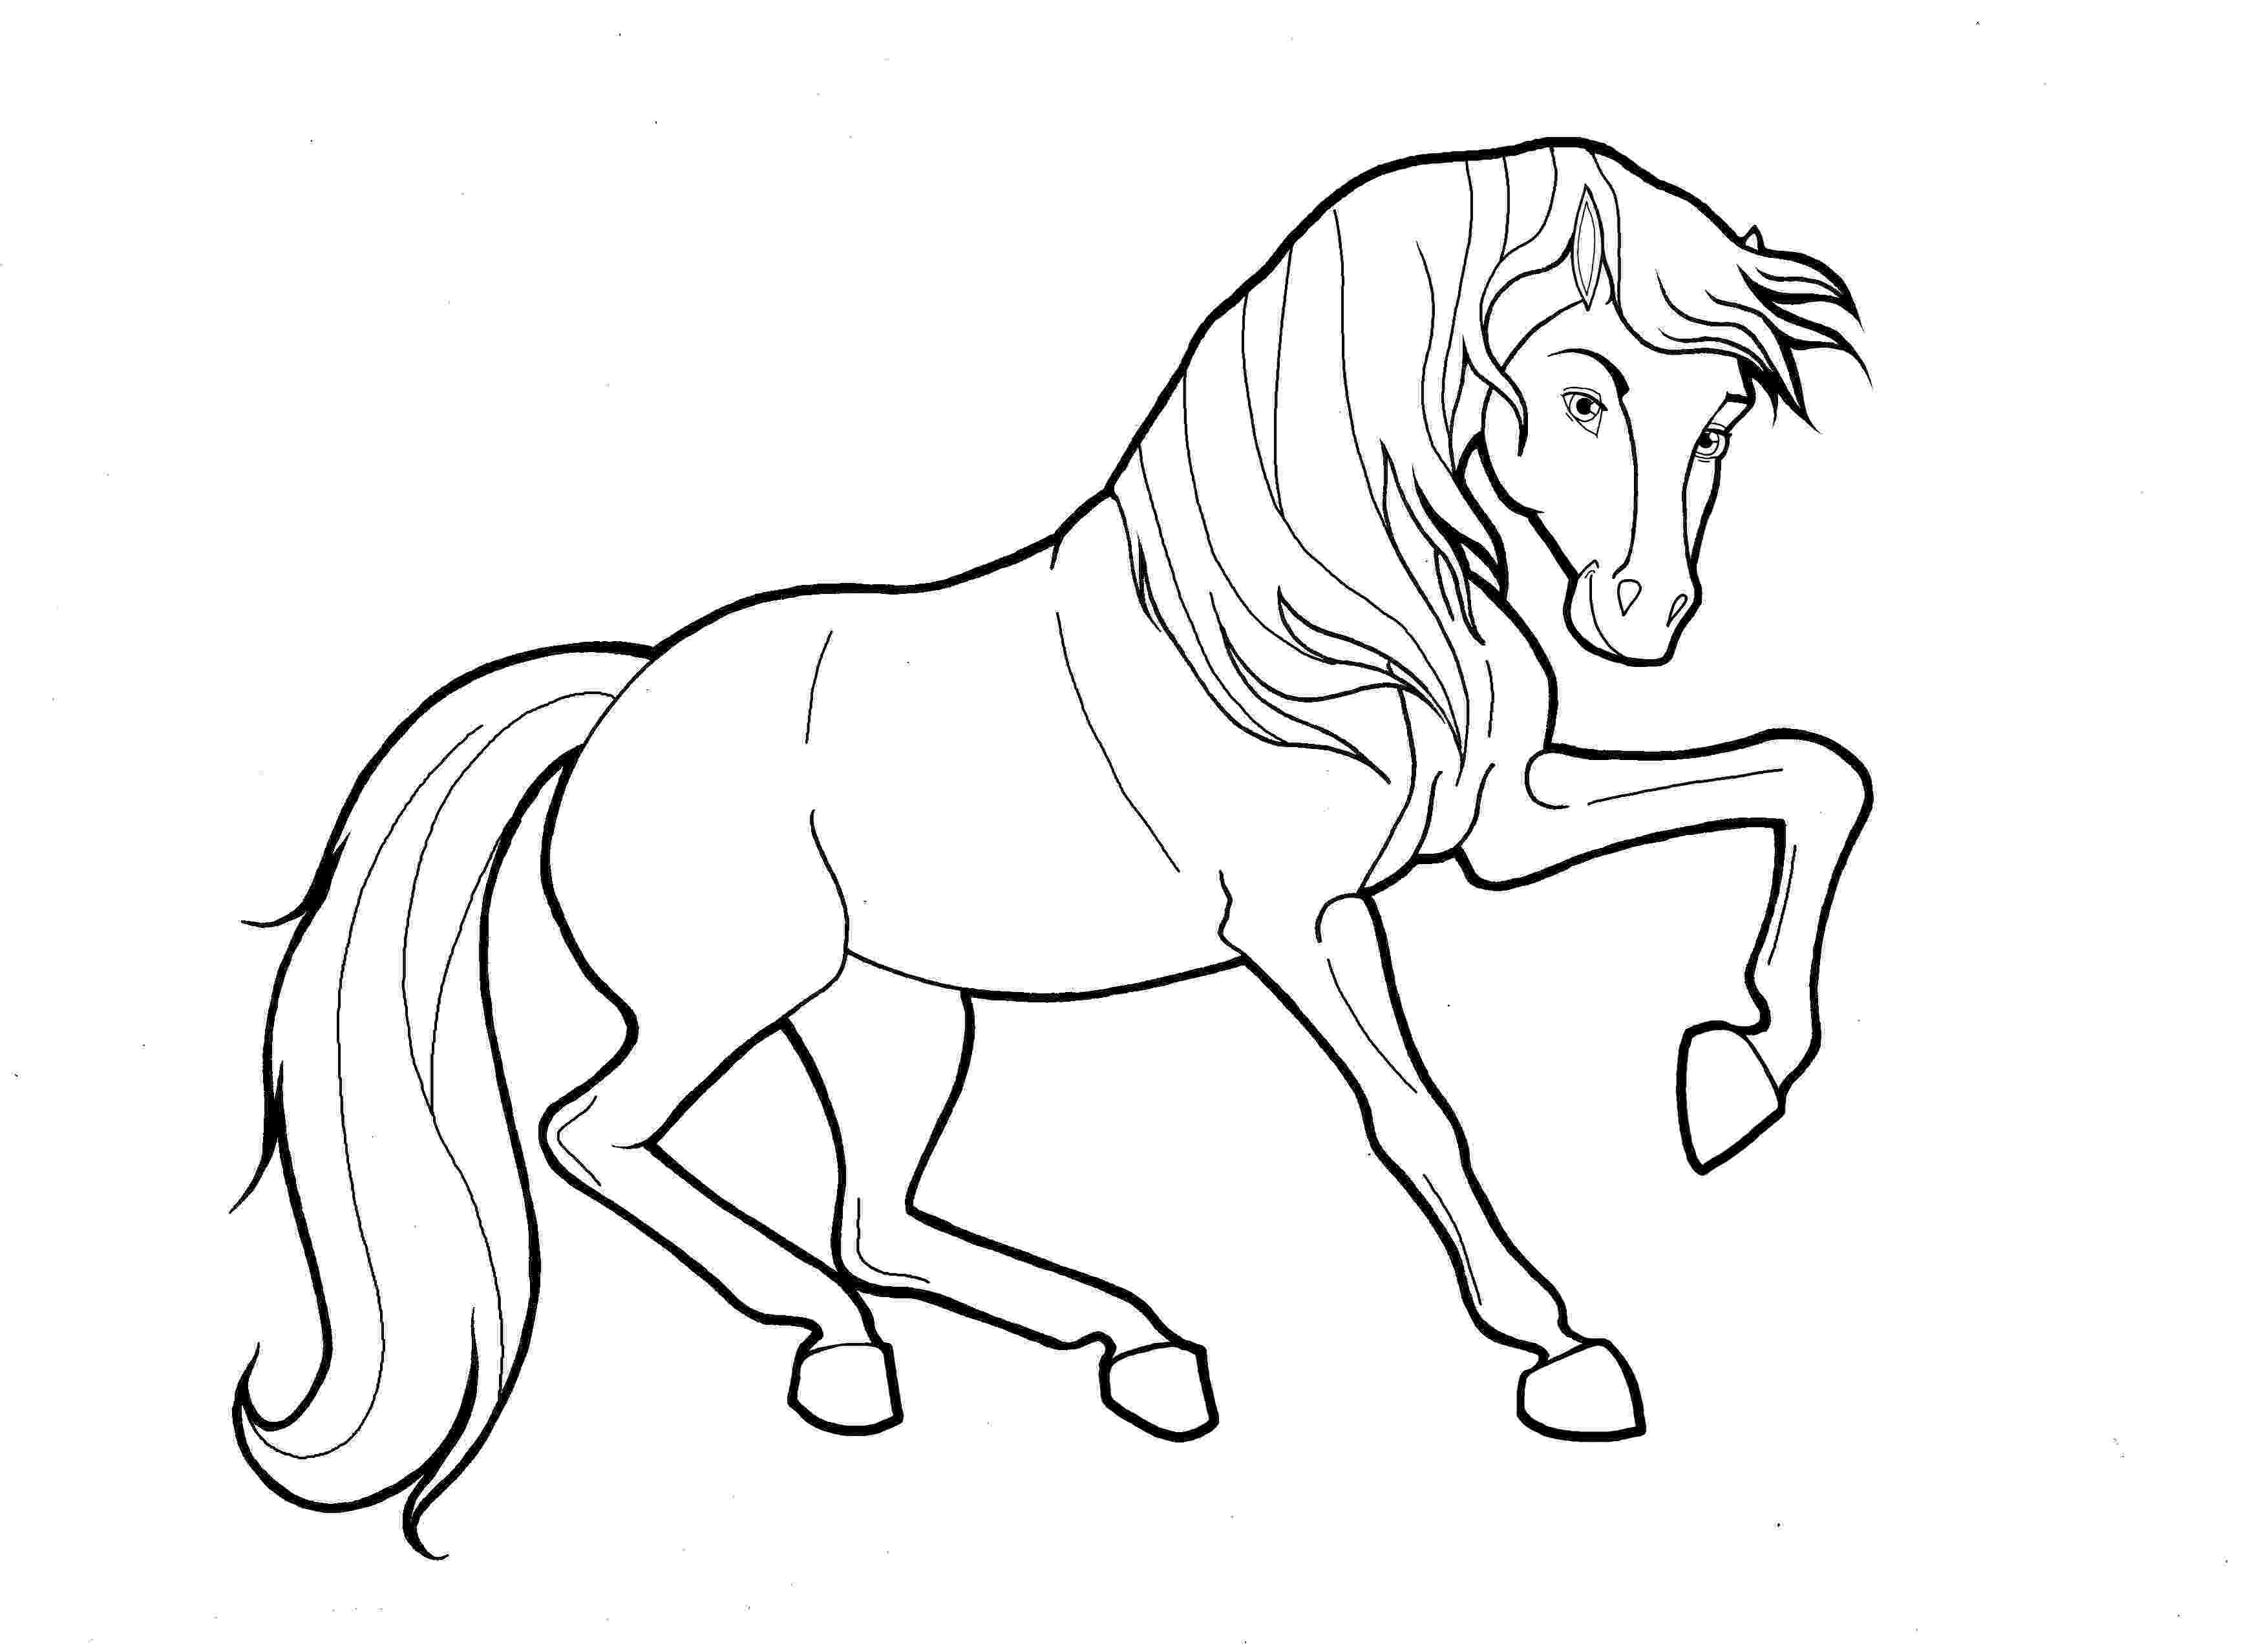 coloring pages of horse realistic horse coloring pages to download and print for free of horse coloring pages